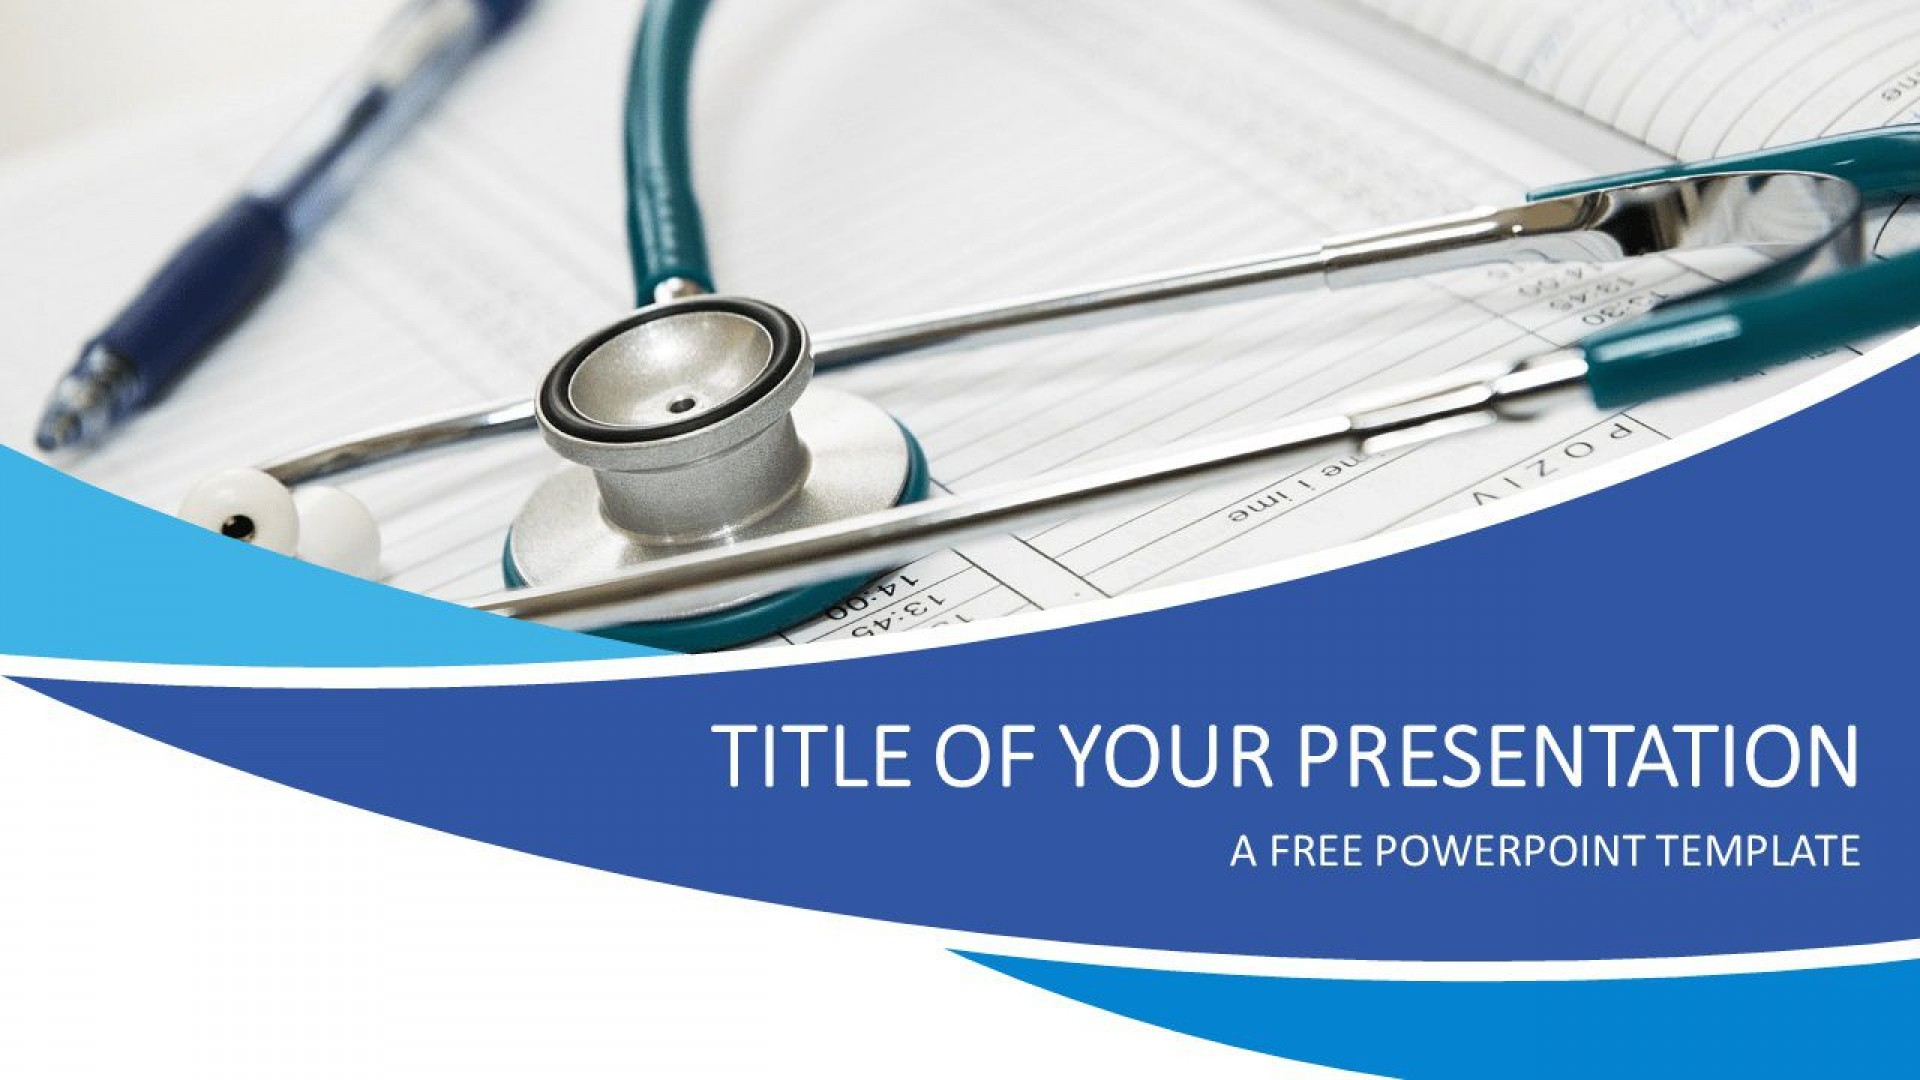 009 Unforgettable Free Health Powerpoint Template Highest Quality  Templates Related Download Healthcare Animated1920